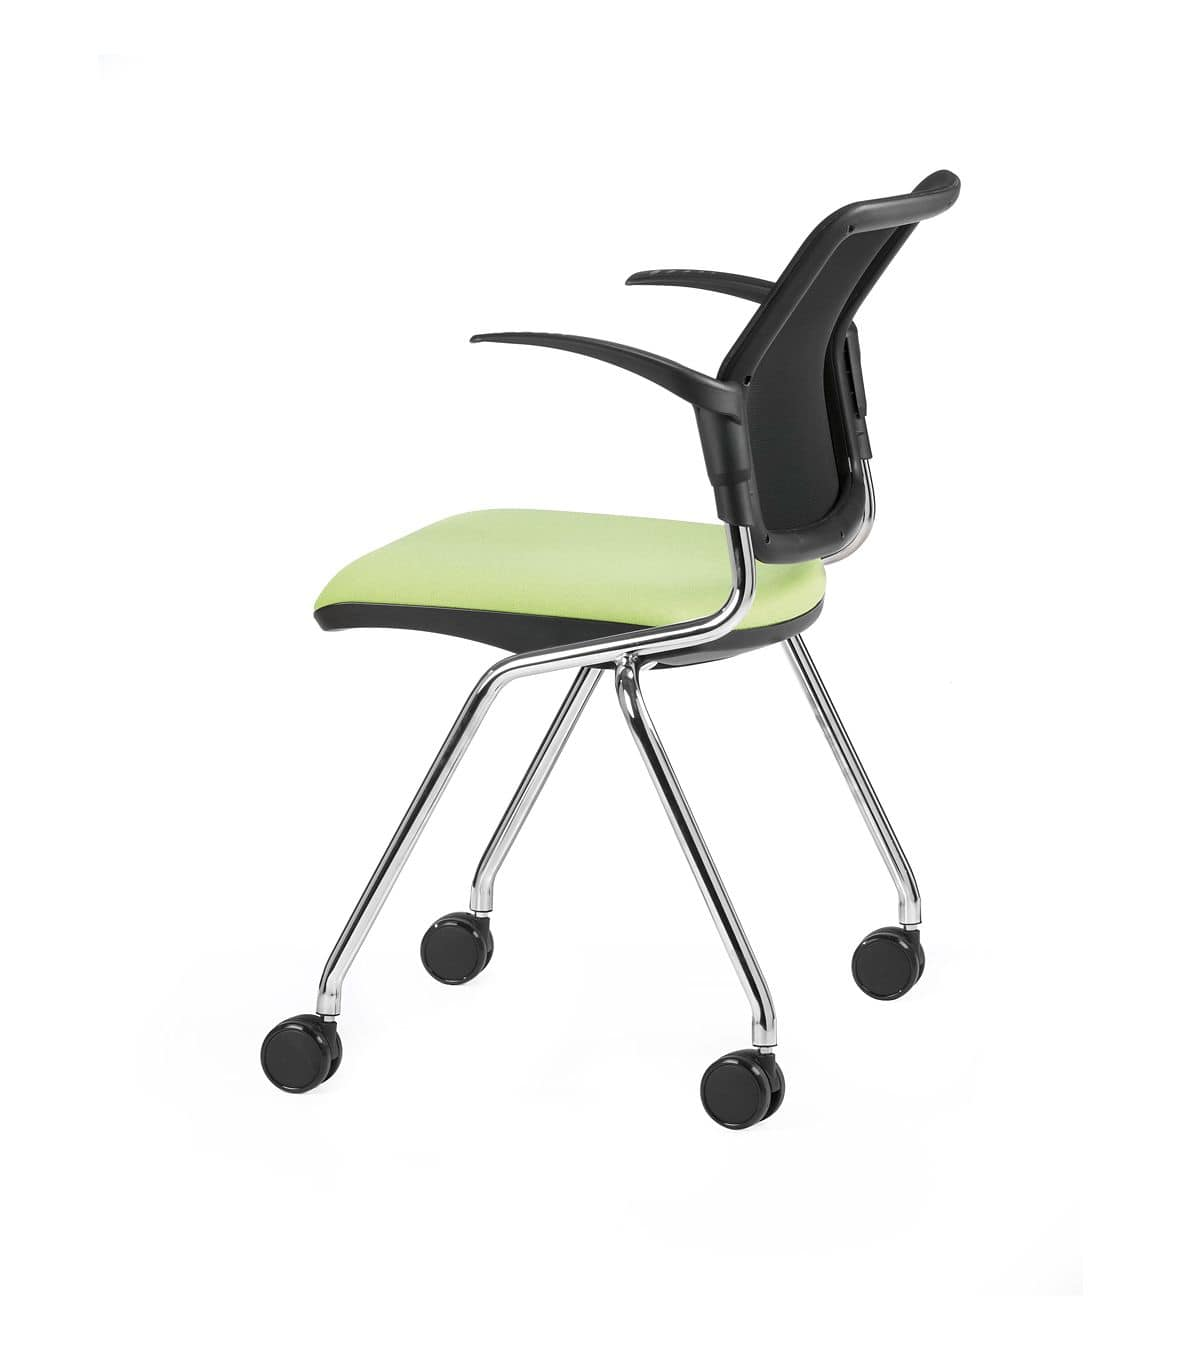 NESTING DELFINET 074 R, Chair with wheels and armrests ideal for operative offices